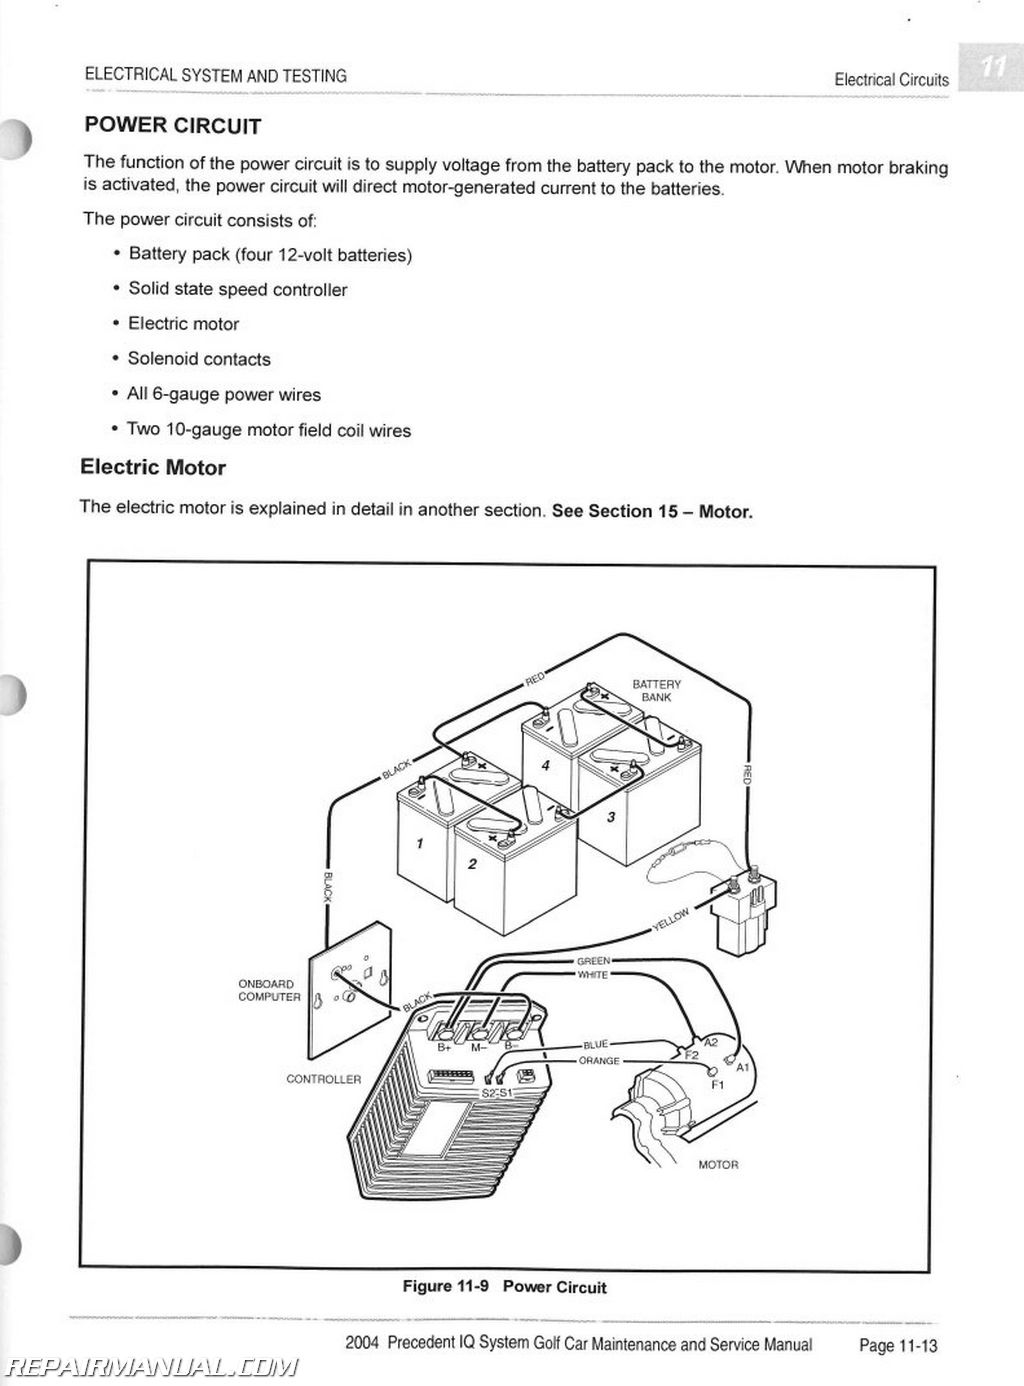 Club Car Wiring Diagram Model on 36 volt club car diagram, 2000 club car brochure, 2000 club car accessories, club car golf cart parts diagram, gas club car parts diagram, 1988 club car parts diagram, 2000 club car specifications, 2000 club car tires, club car electrical diagram, 98 club car parts diagram, 2000 club car golf cart, club car carryall parts diagram, 2000 club car body, 2007 club car parts diagram, 2000 club cart golf cart, club car schematic diagram, club car electric motor diagram,